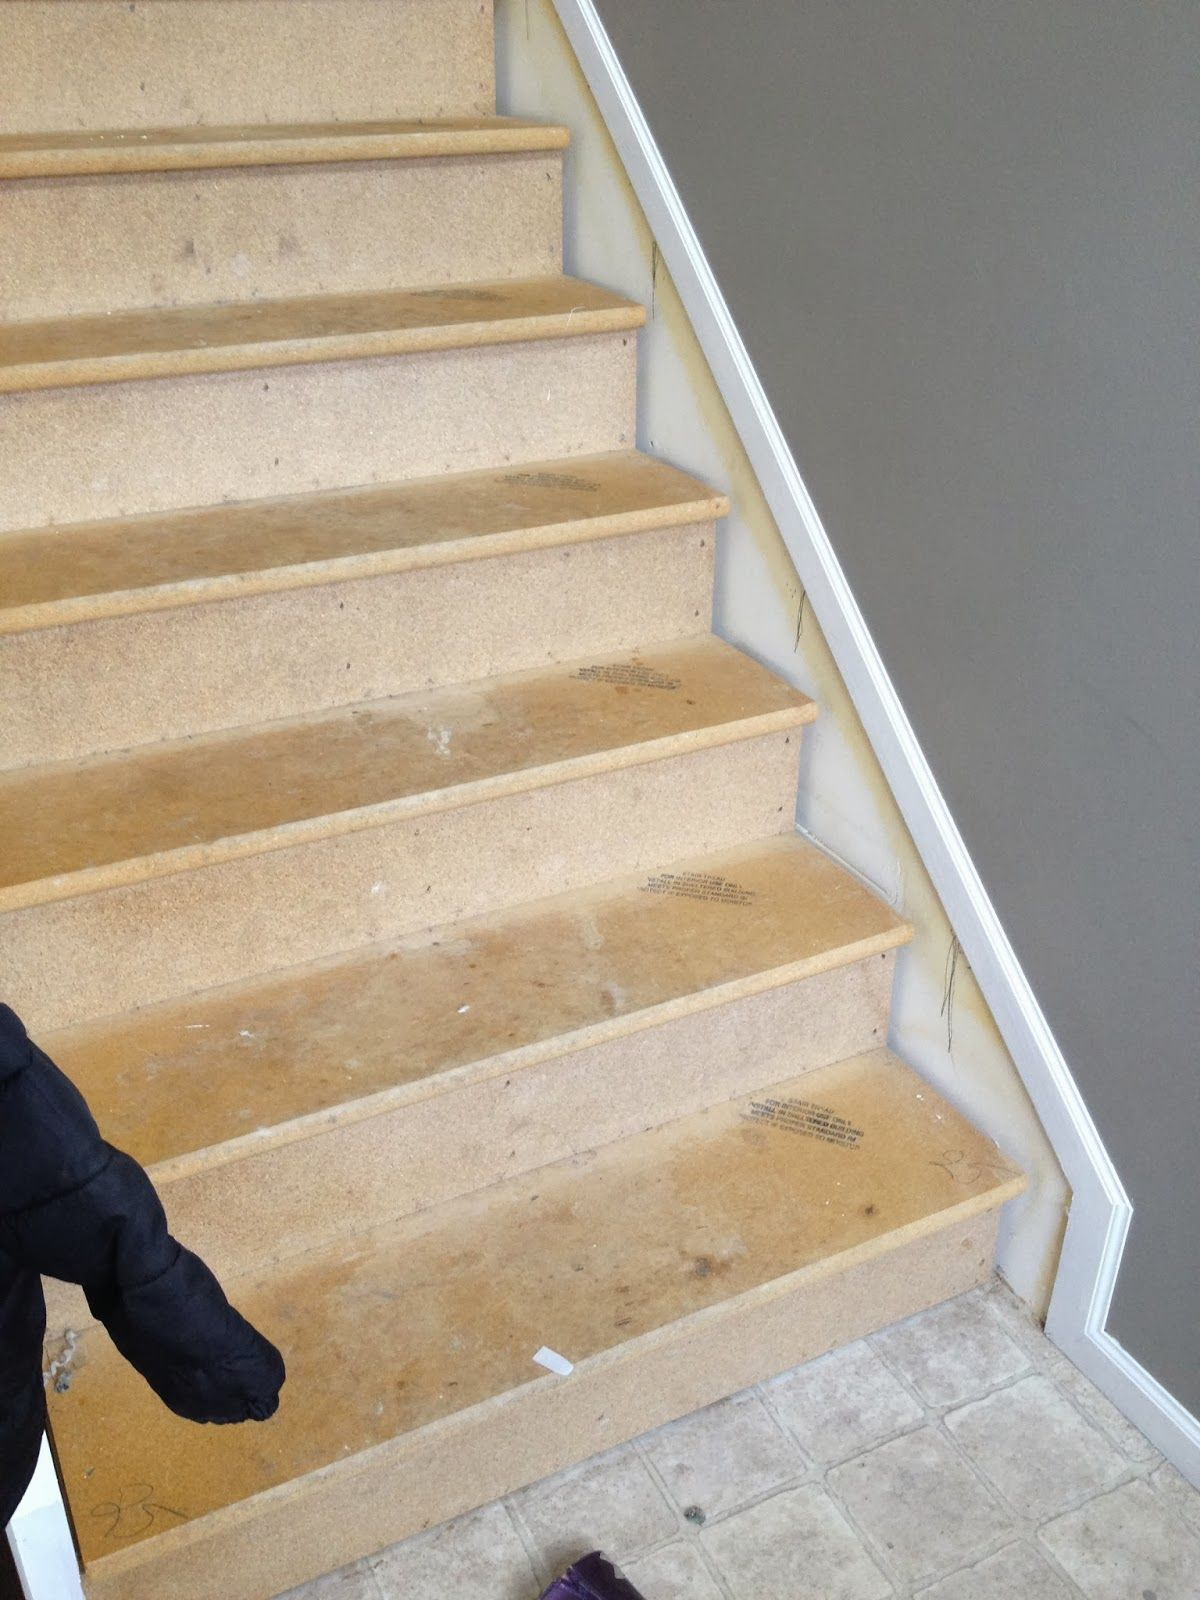 Turn Carpeted Stairs Into Hardwood Beauties For Just 60 | Changing Carpeted Stairs To Hardwood